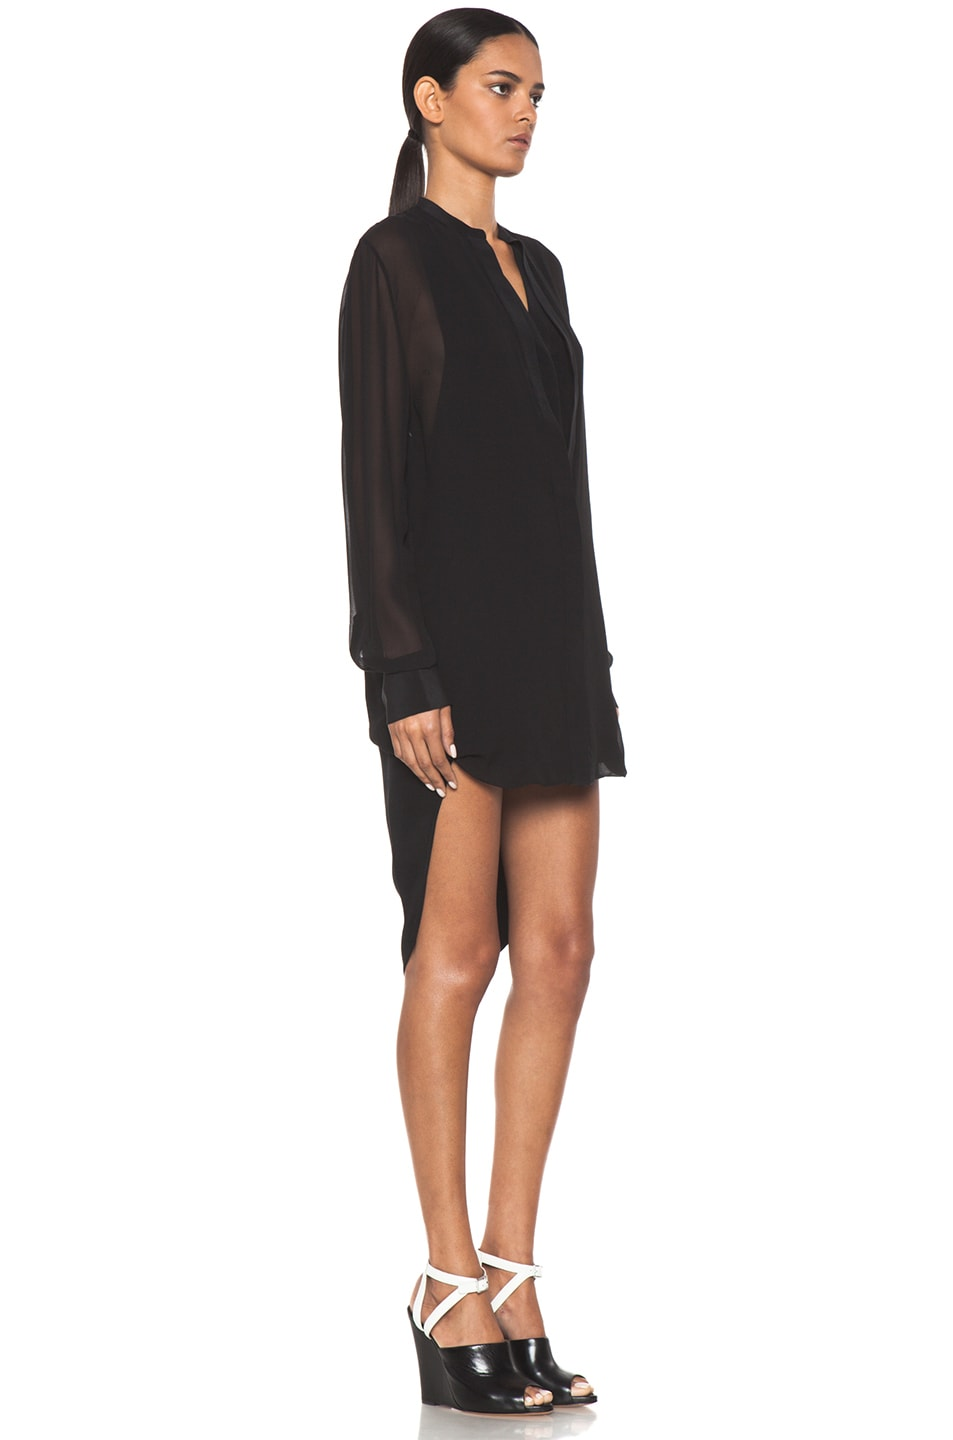 Image 3 of 3.1 phillip lim Silk Loop Hem Layered Shirt Dress in Black